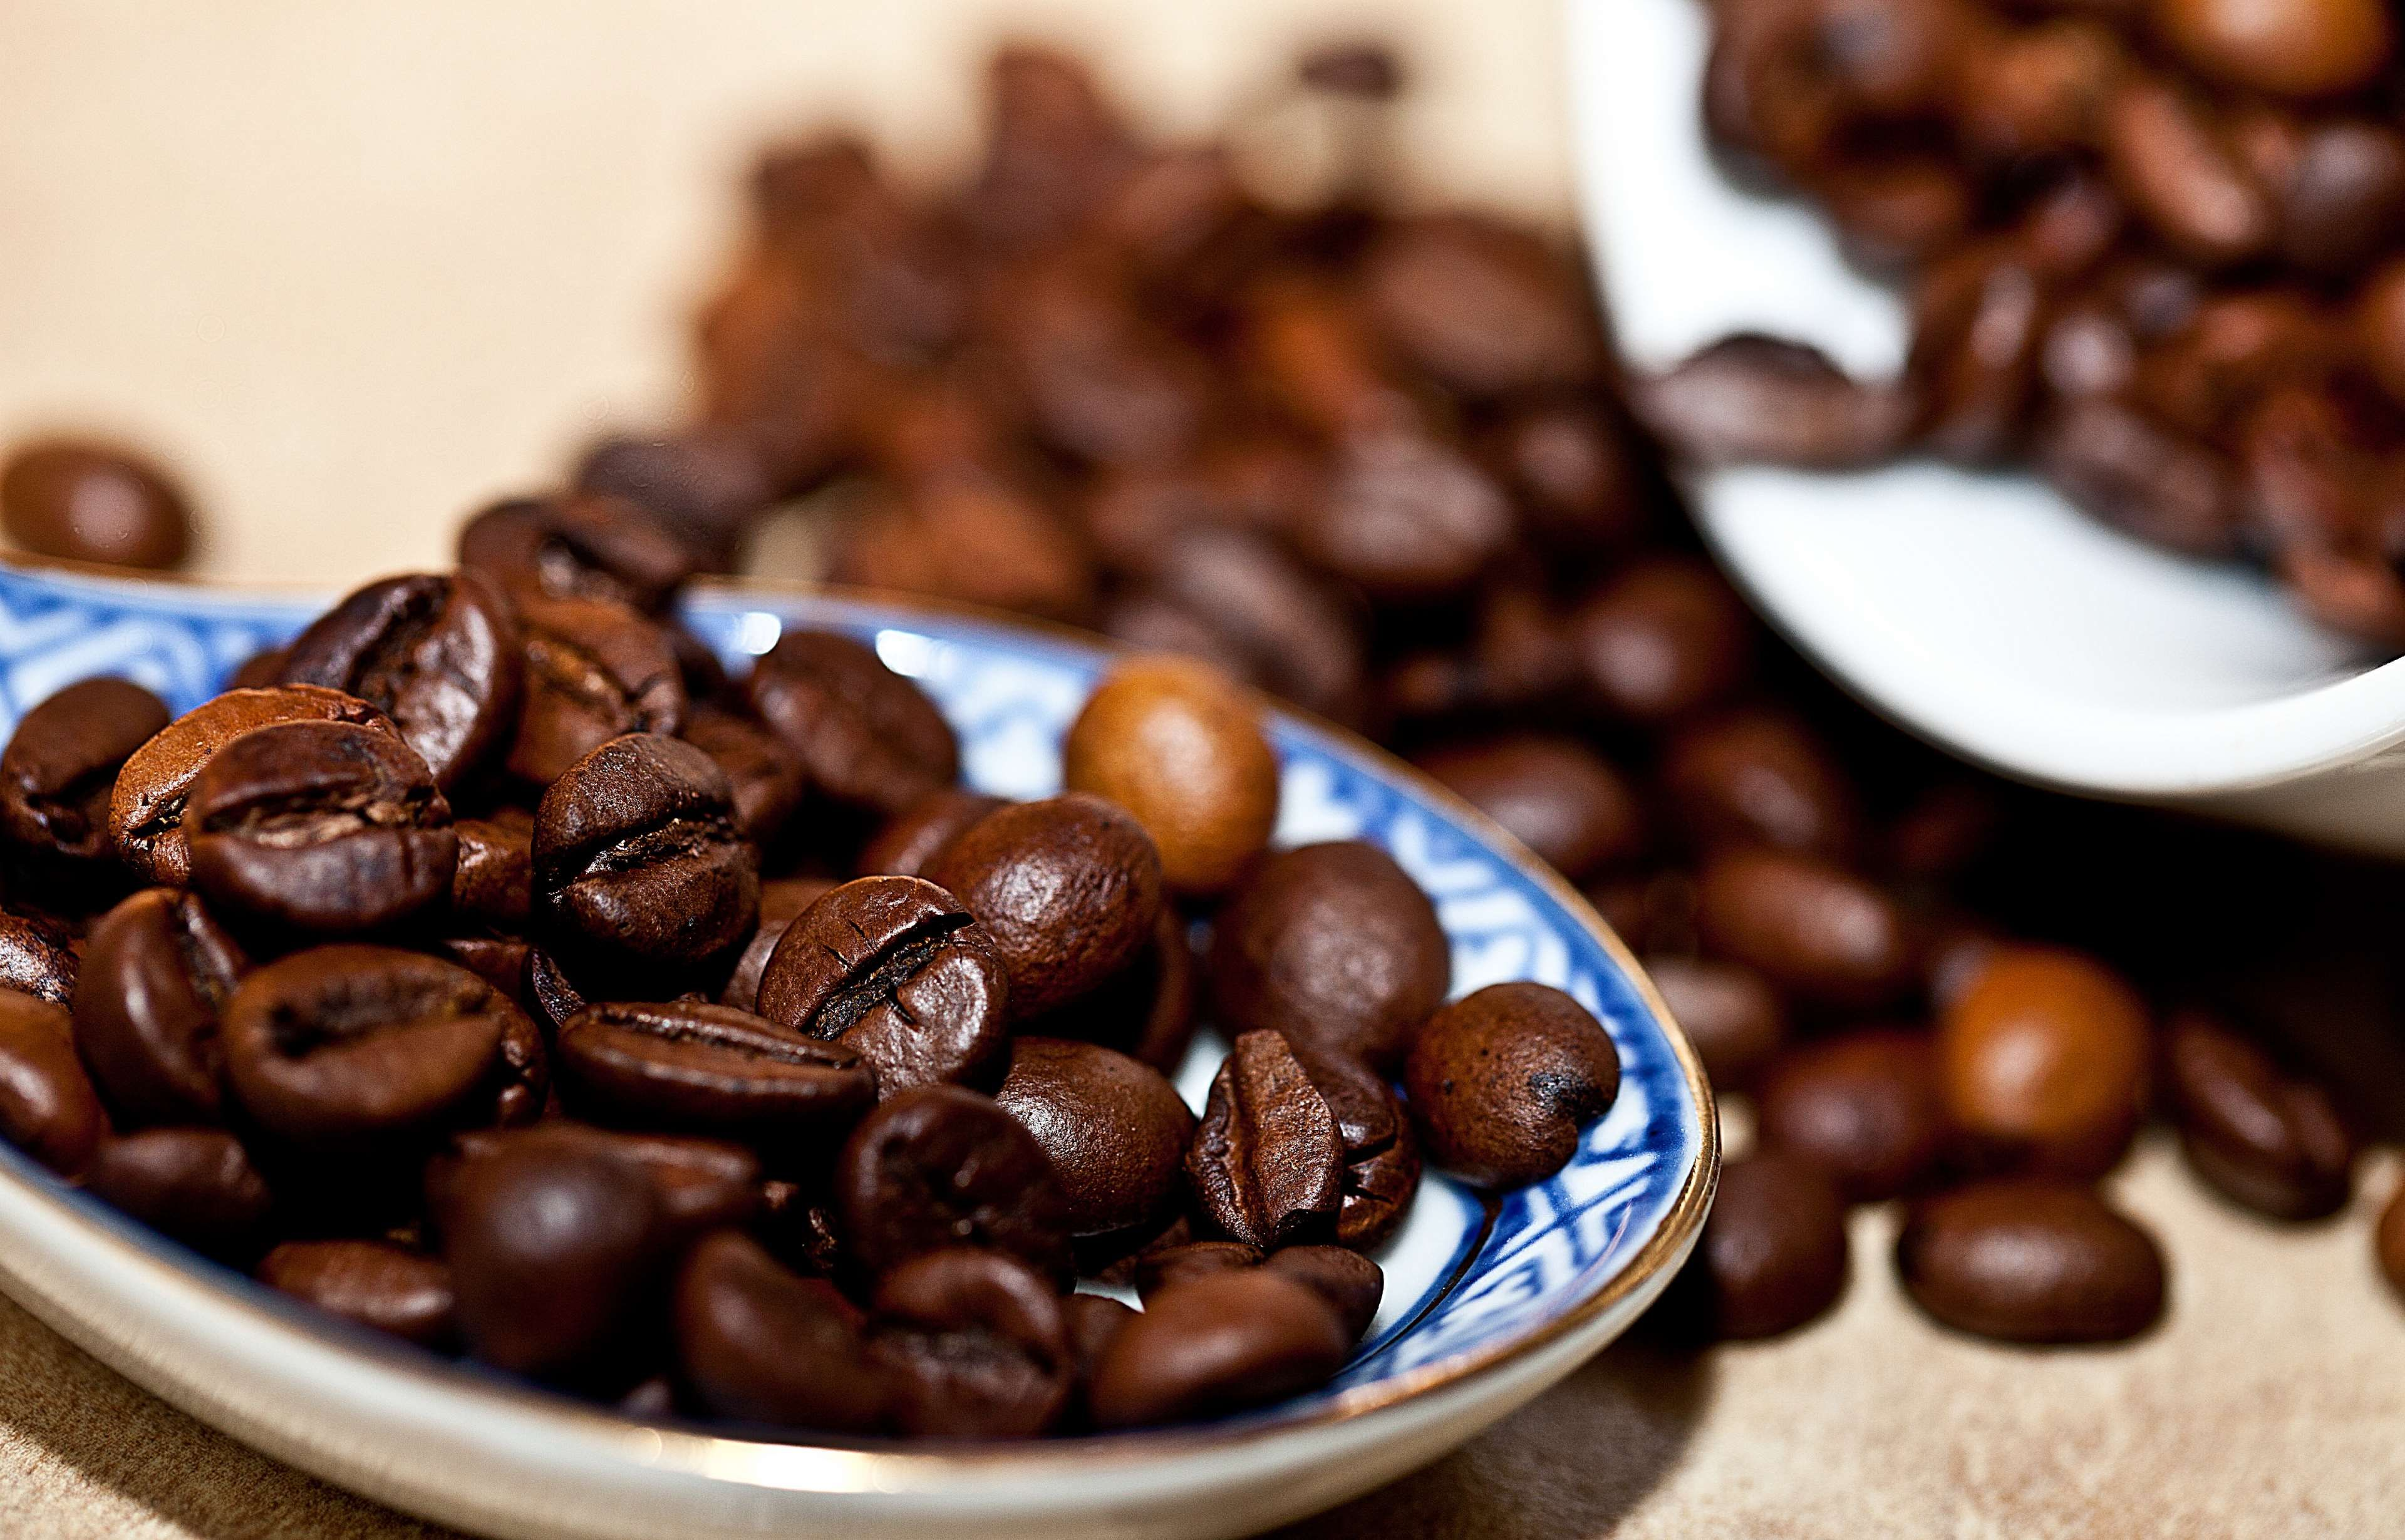 Coffee Arabica Health Benefits Arabica Coffee Coffee Beans Grain Coffee Roasted Coffee